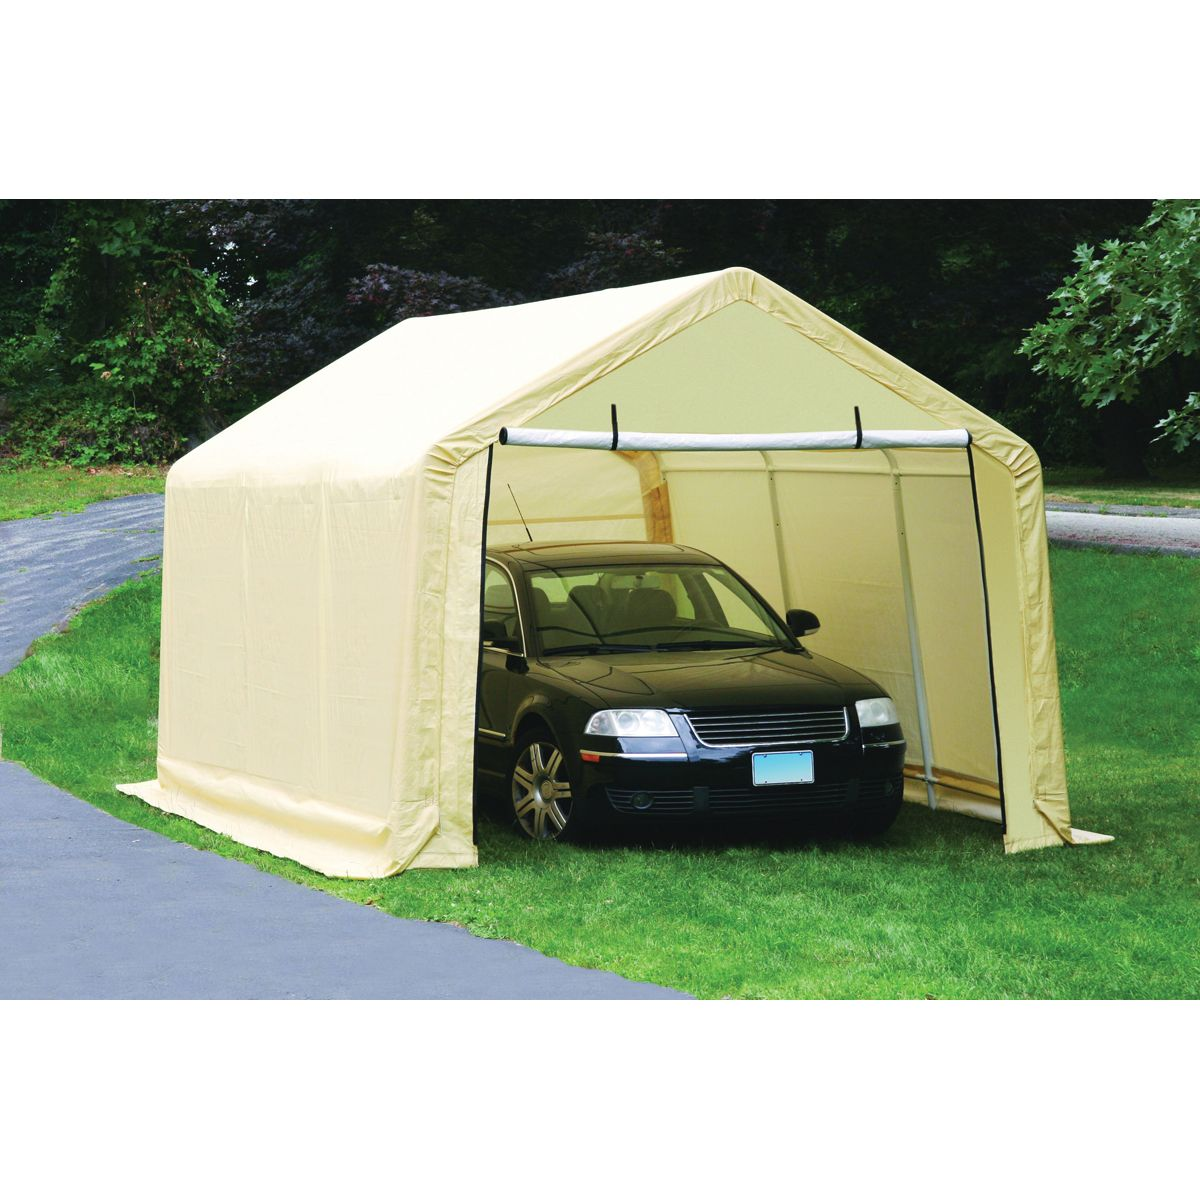 10 Ft X 17 Ft Portable Garage Portable Garage Portable Carport Portable Sheds